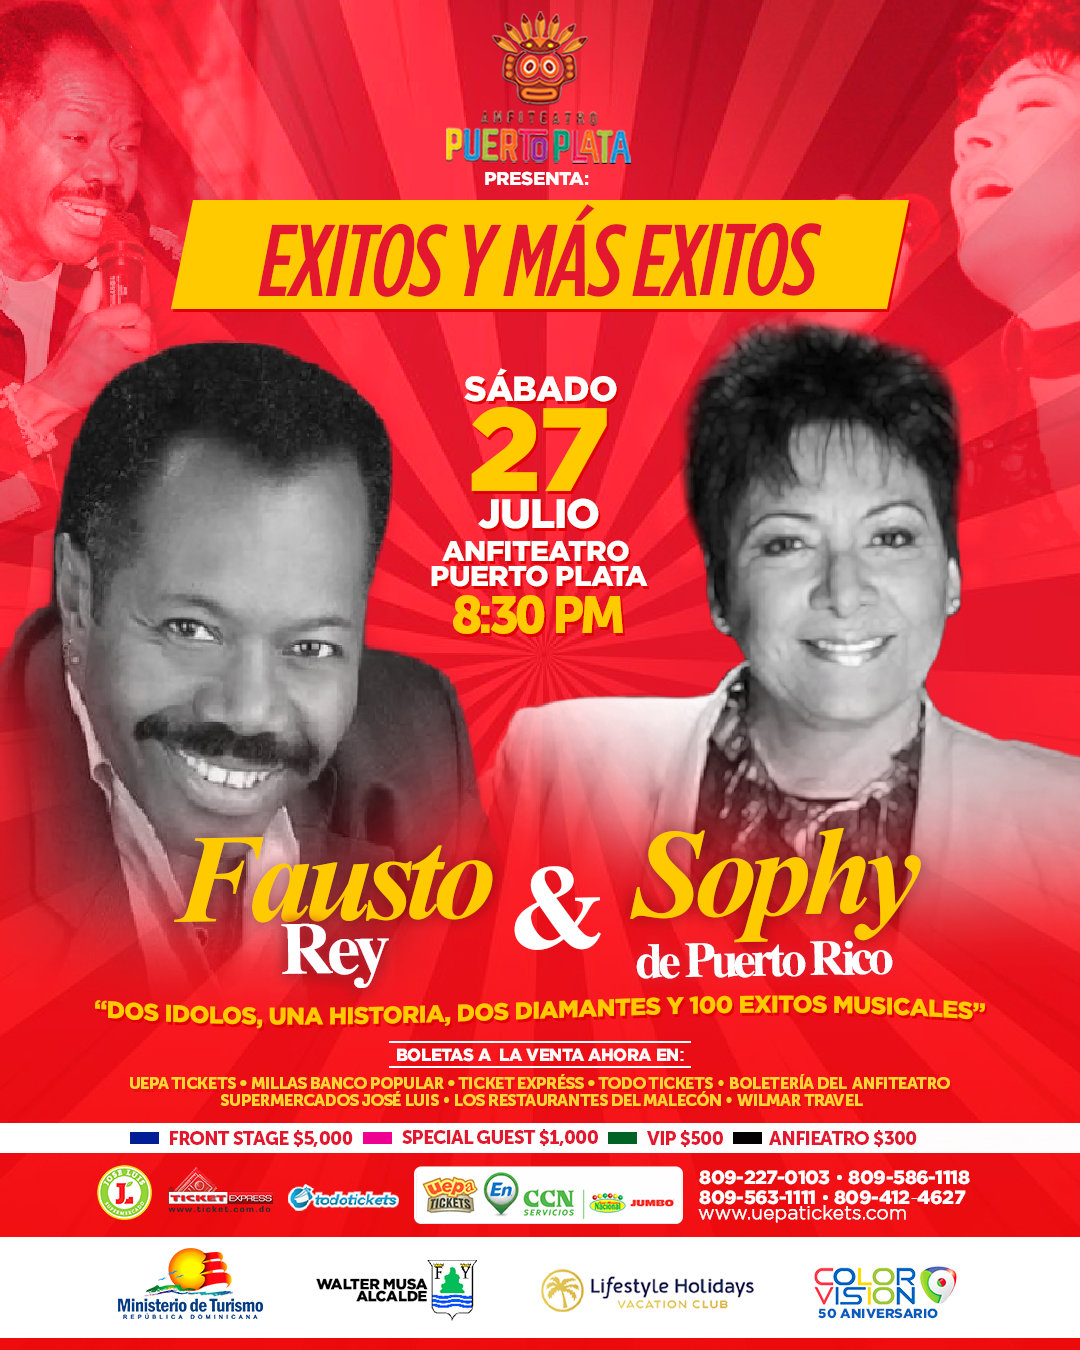 fausto Rey Sophy